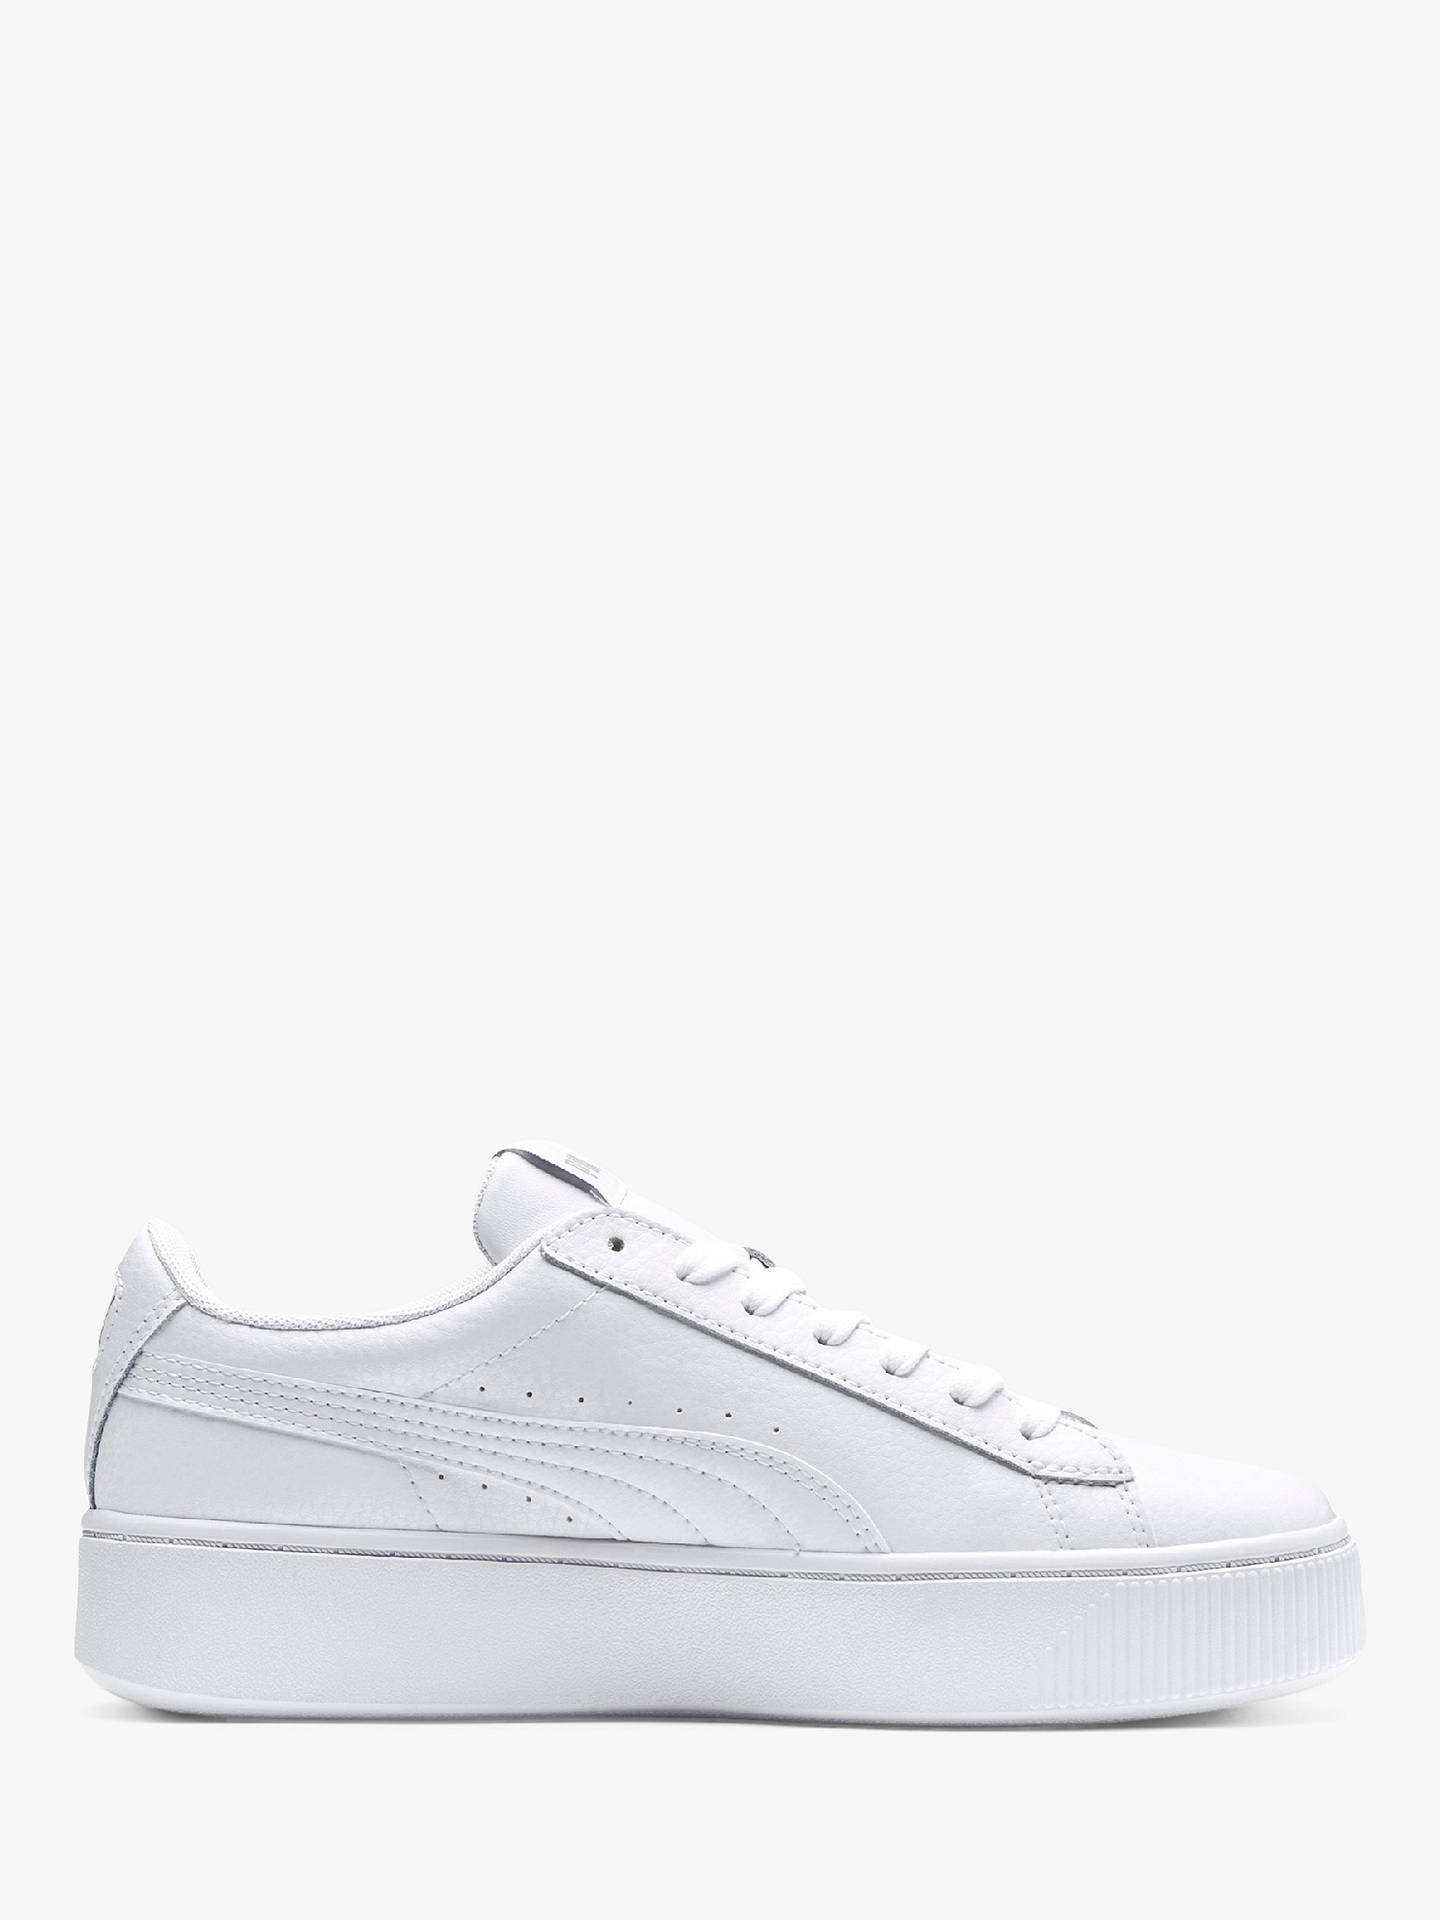 5a46fb1d5b2 BuyPUMA Vikky Stacked Women s Trainers